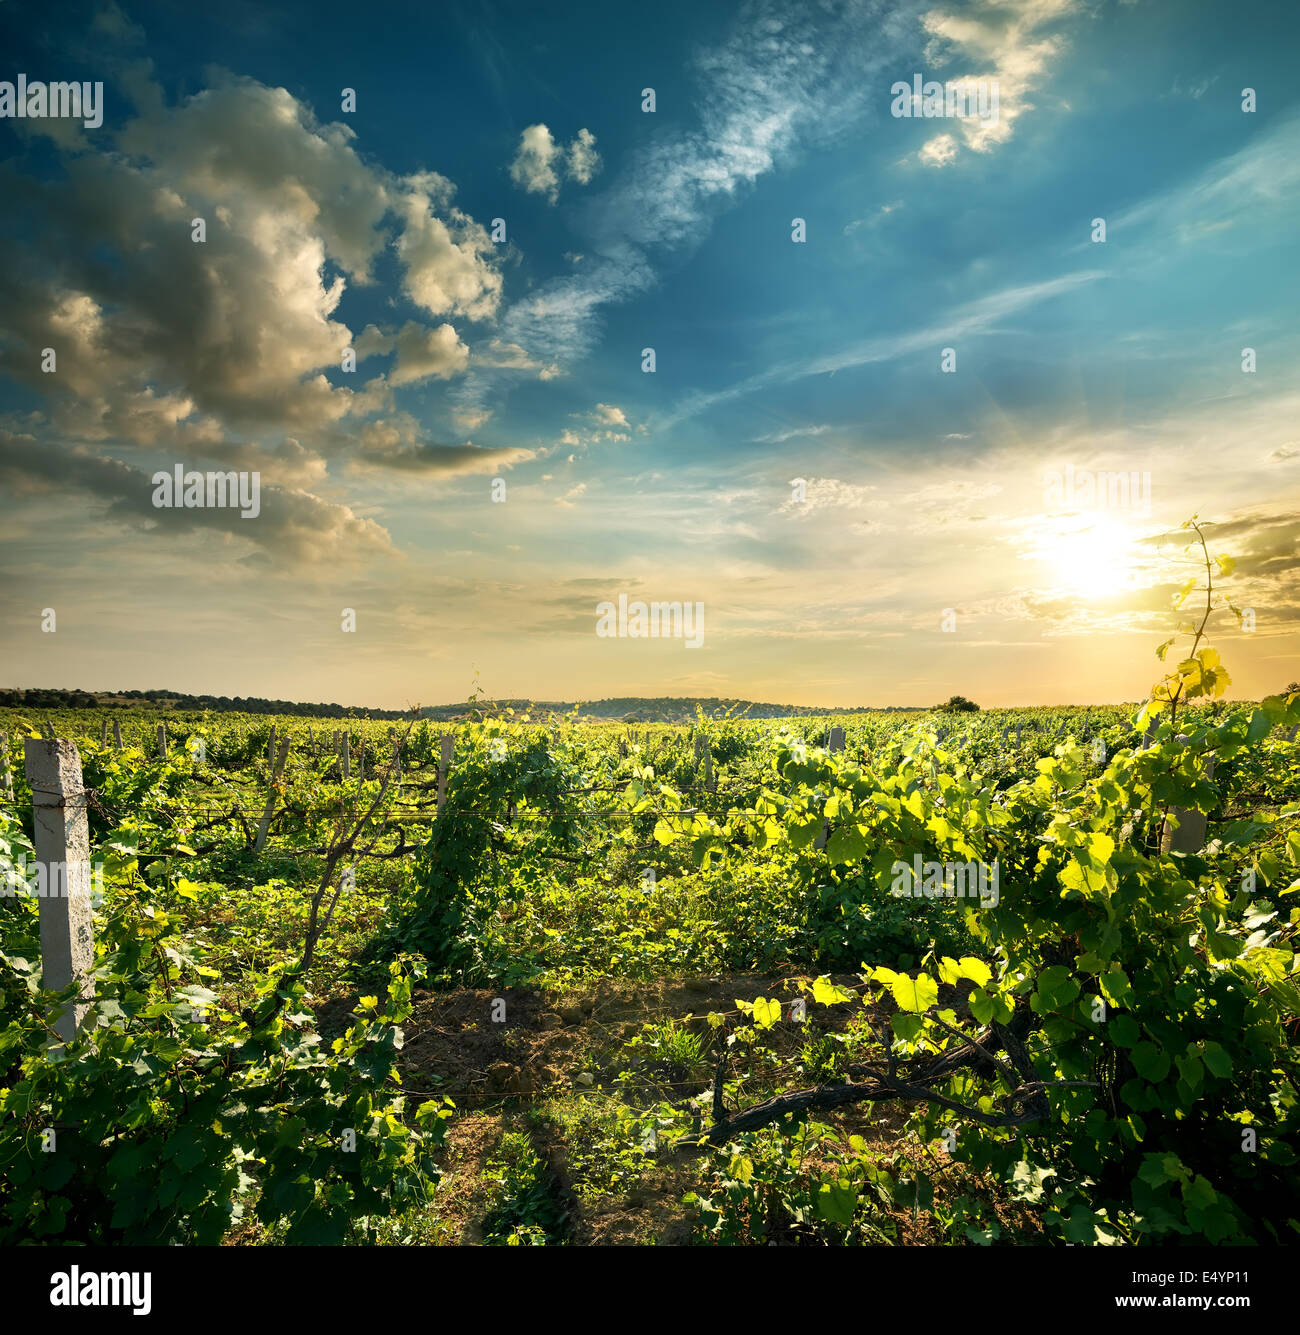 Green grape field in the evening sun Stock Photo